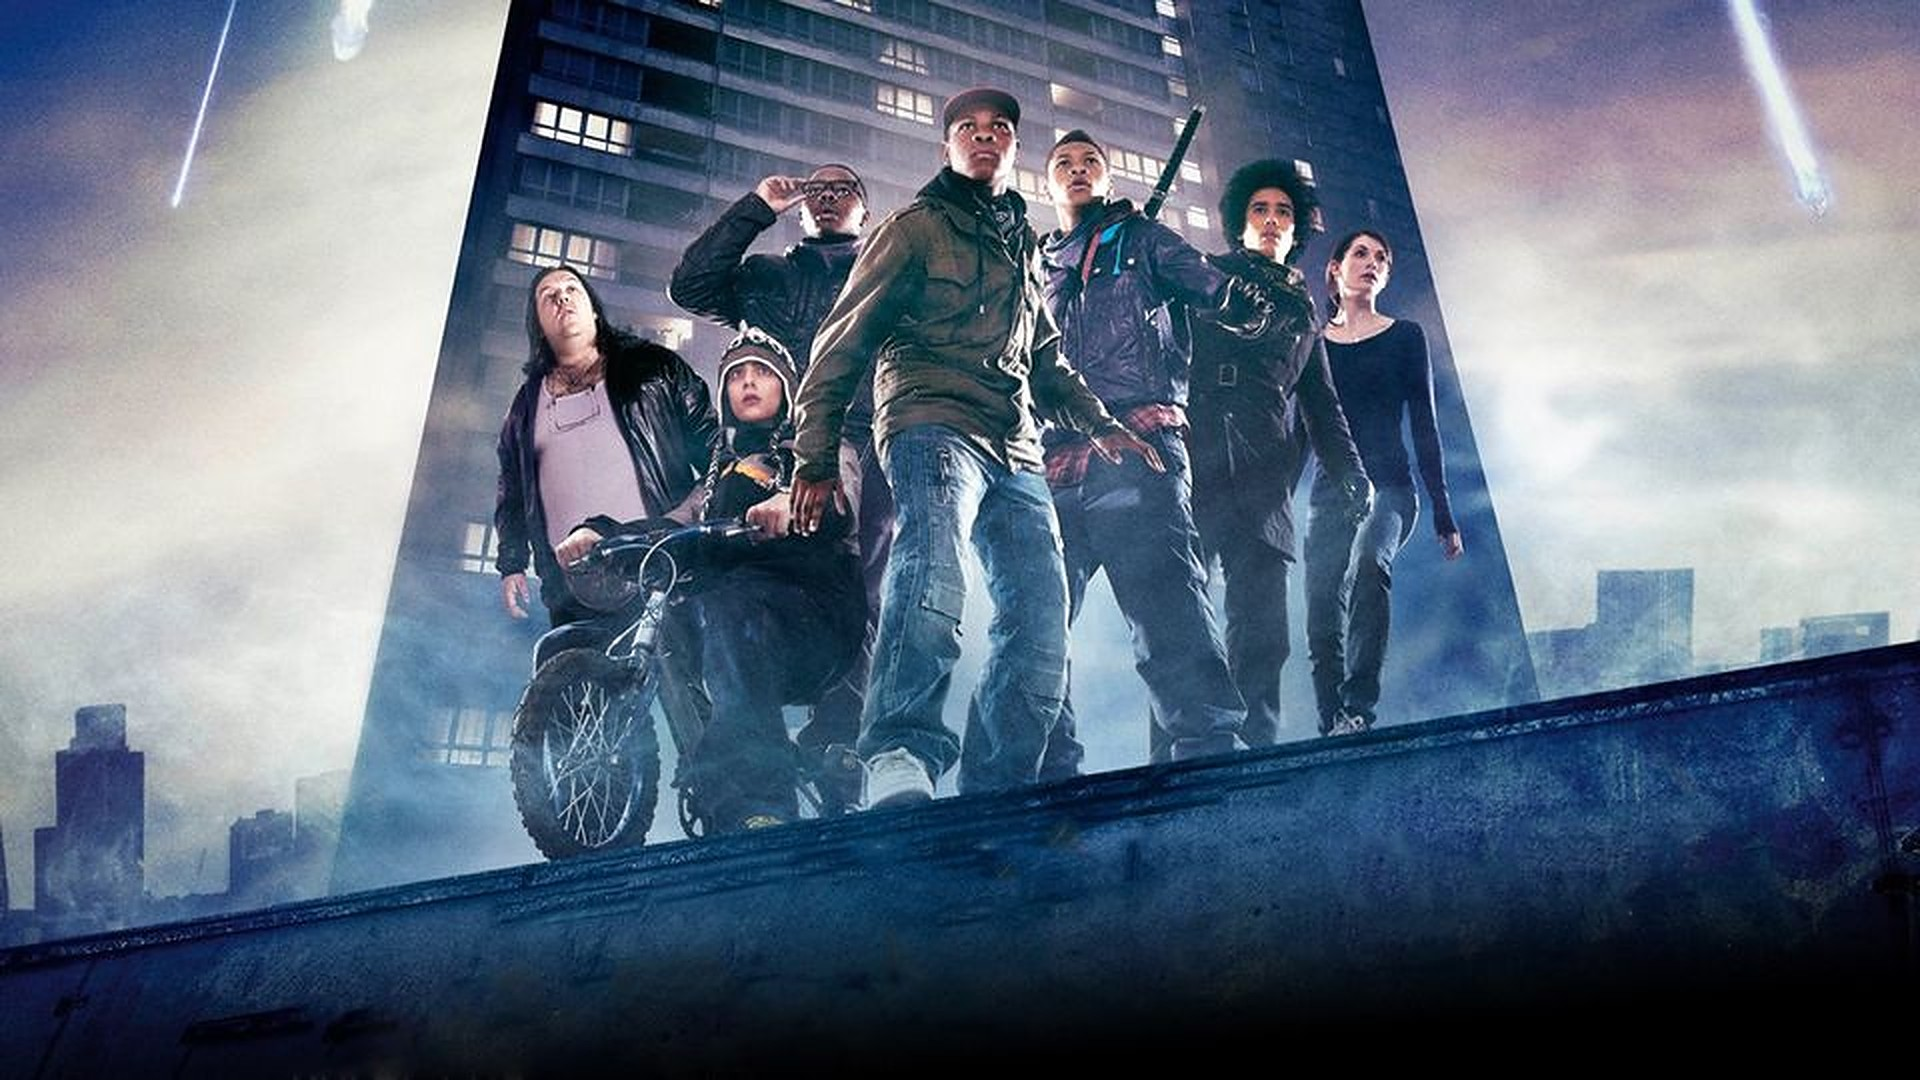 'Attack the Block 2': John Boyega returns to produce and star in highly anticipated sequel